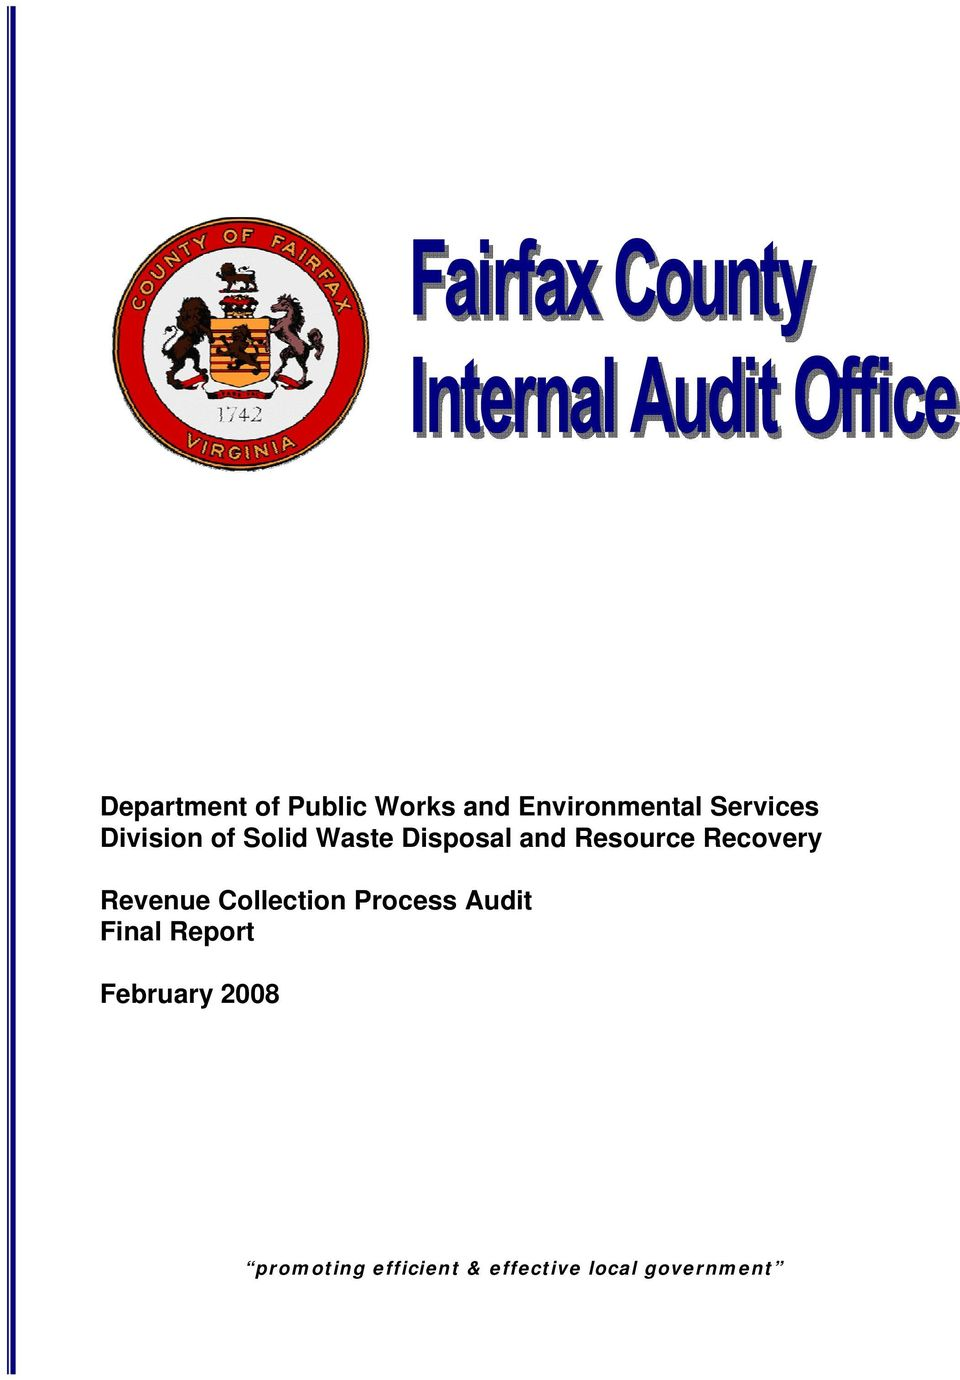 Revenue Collection Process Audit Final Report February